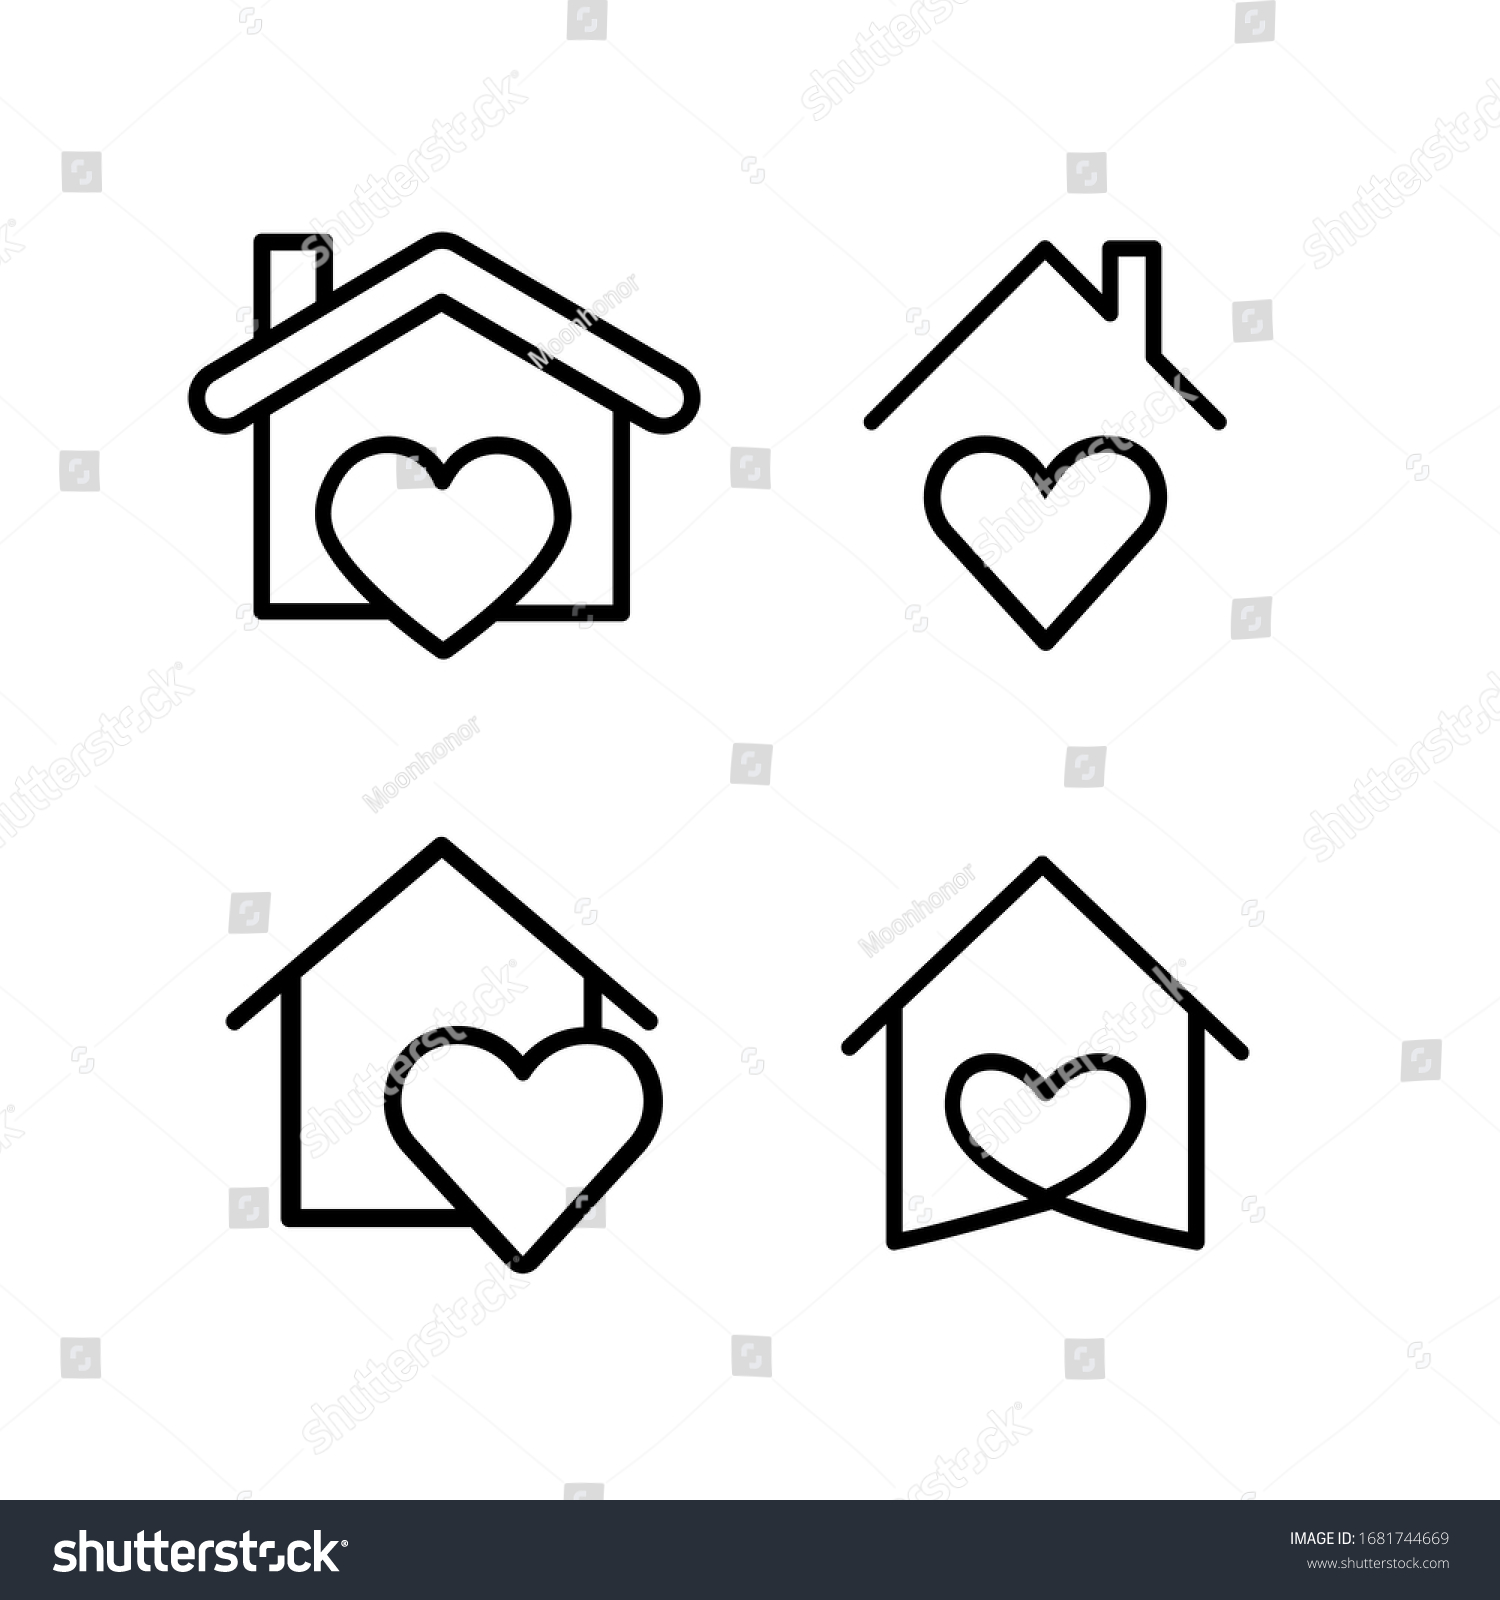 Heart with home shape designed as a logo or icon. this icons prepared for coronovirus (covid-19) Remarkable icons shows messages ''stay home'' or ''stay safe''  #1681744669